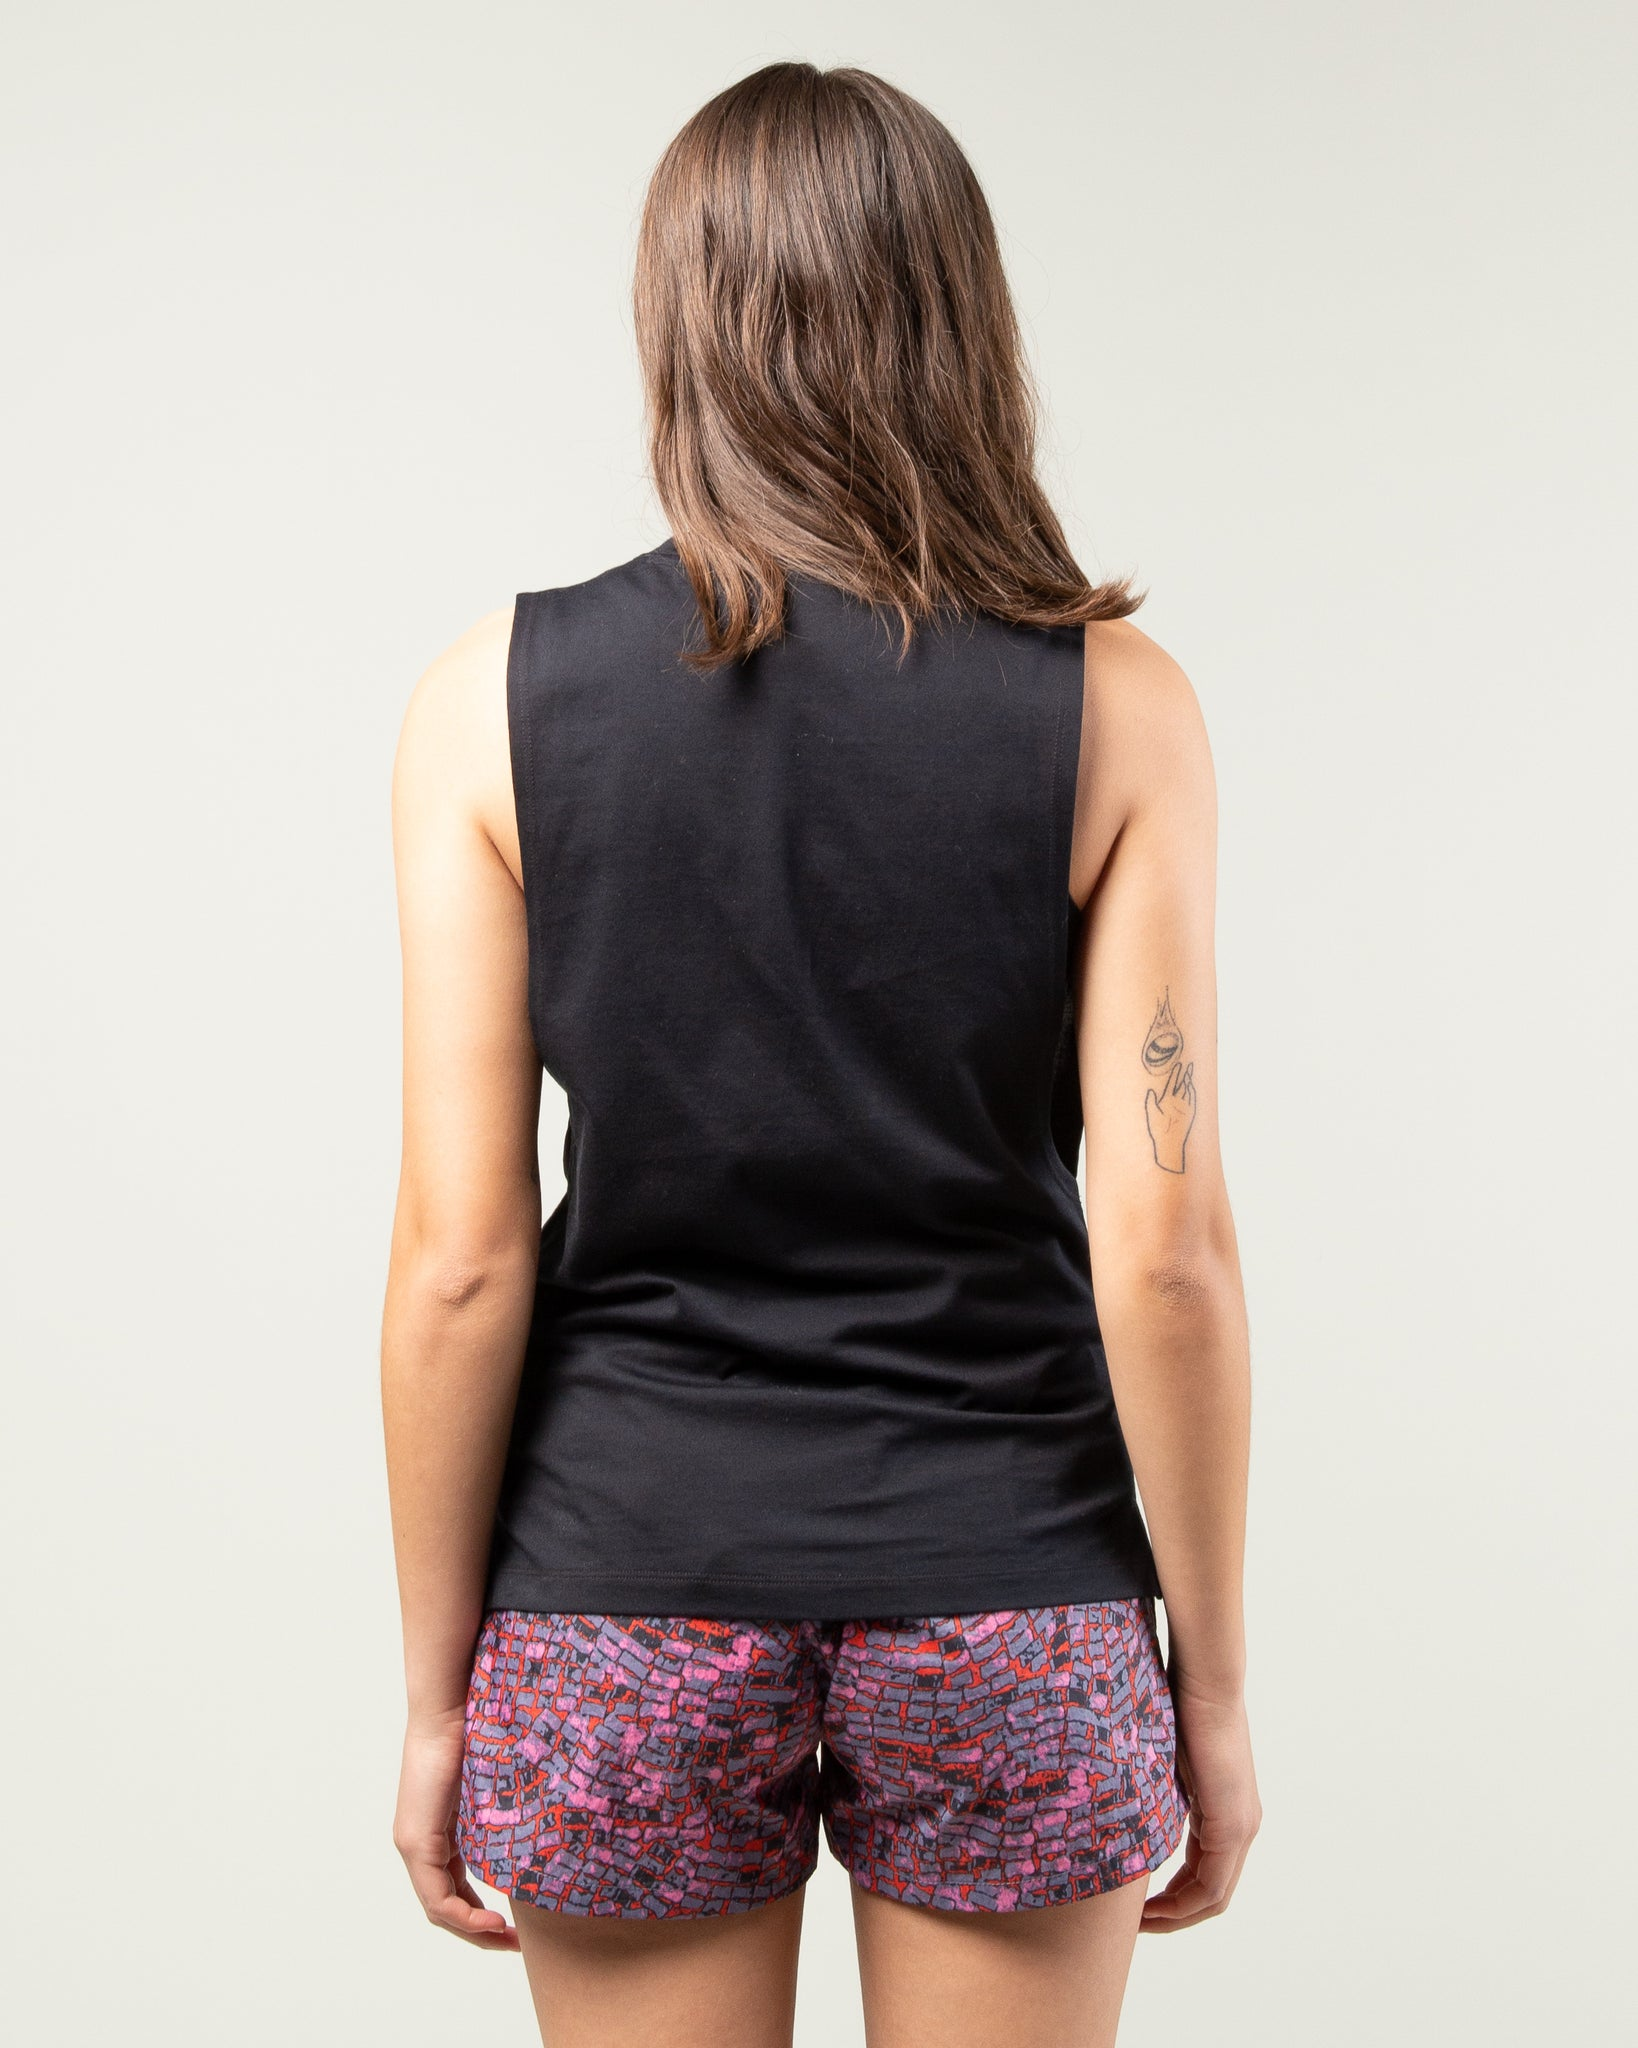 WMNS NRG ACG Tank Top Black/Black/Anthracite